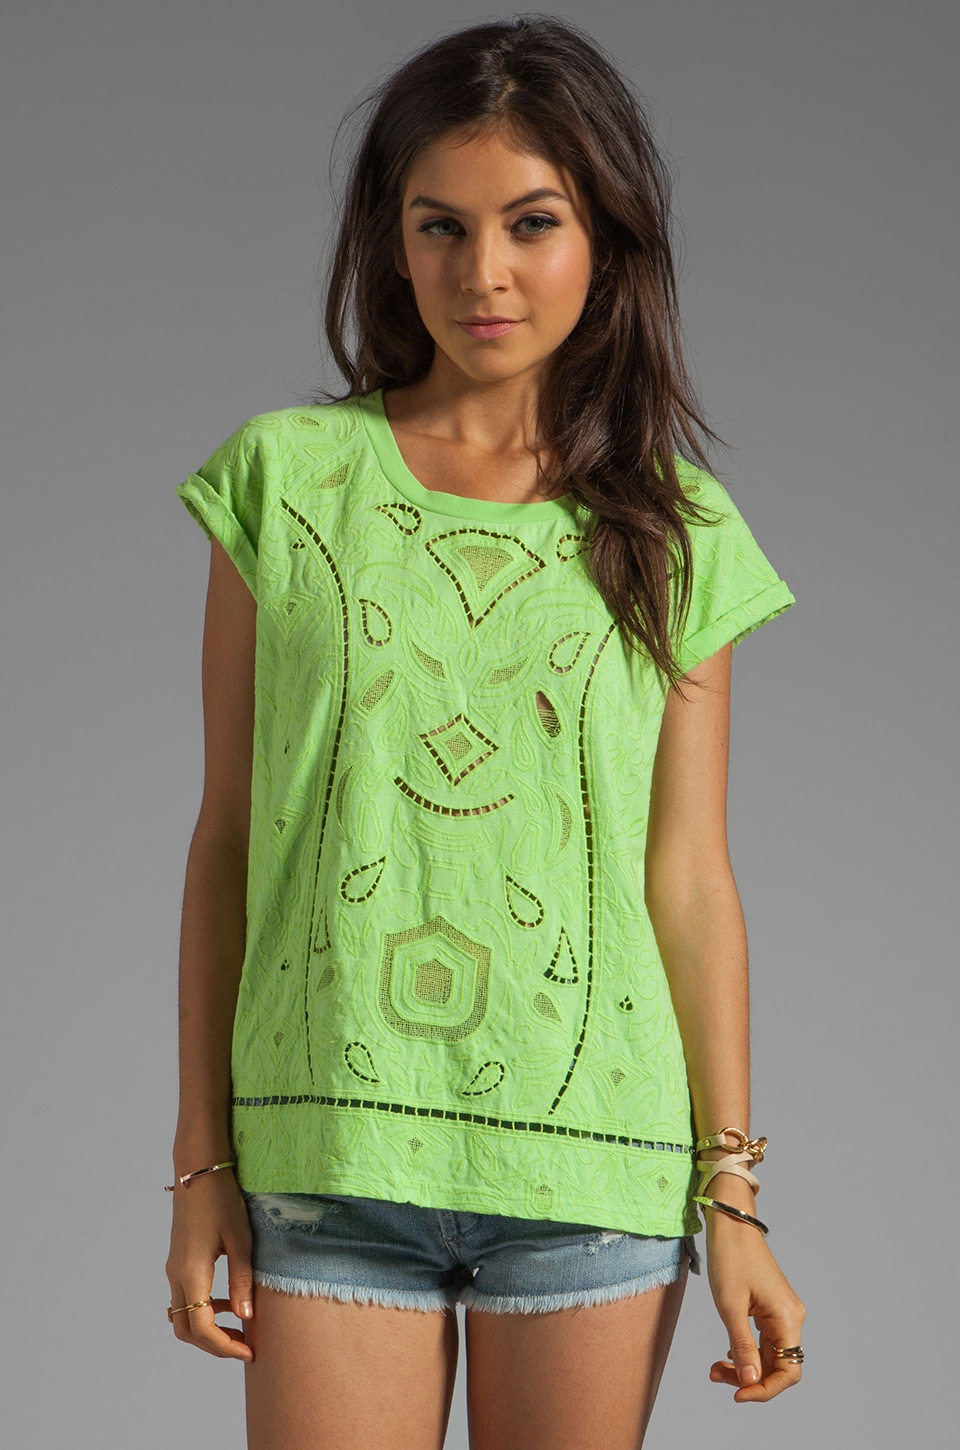 April, May April May Cancun Short Sleeve Top in Lime